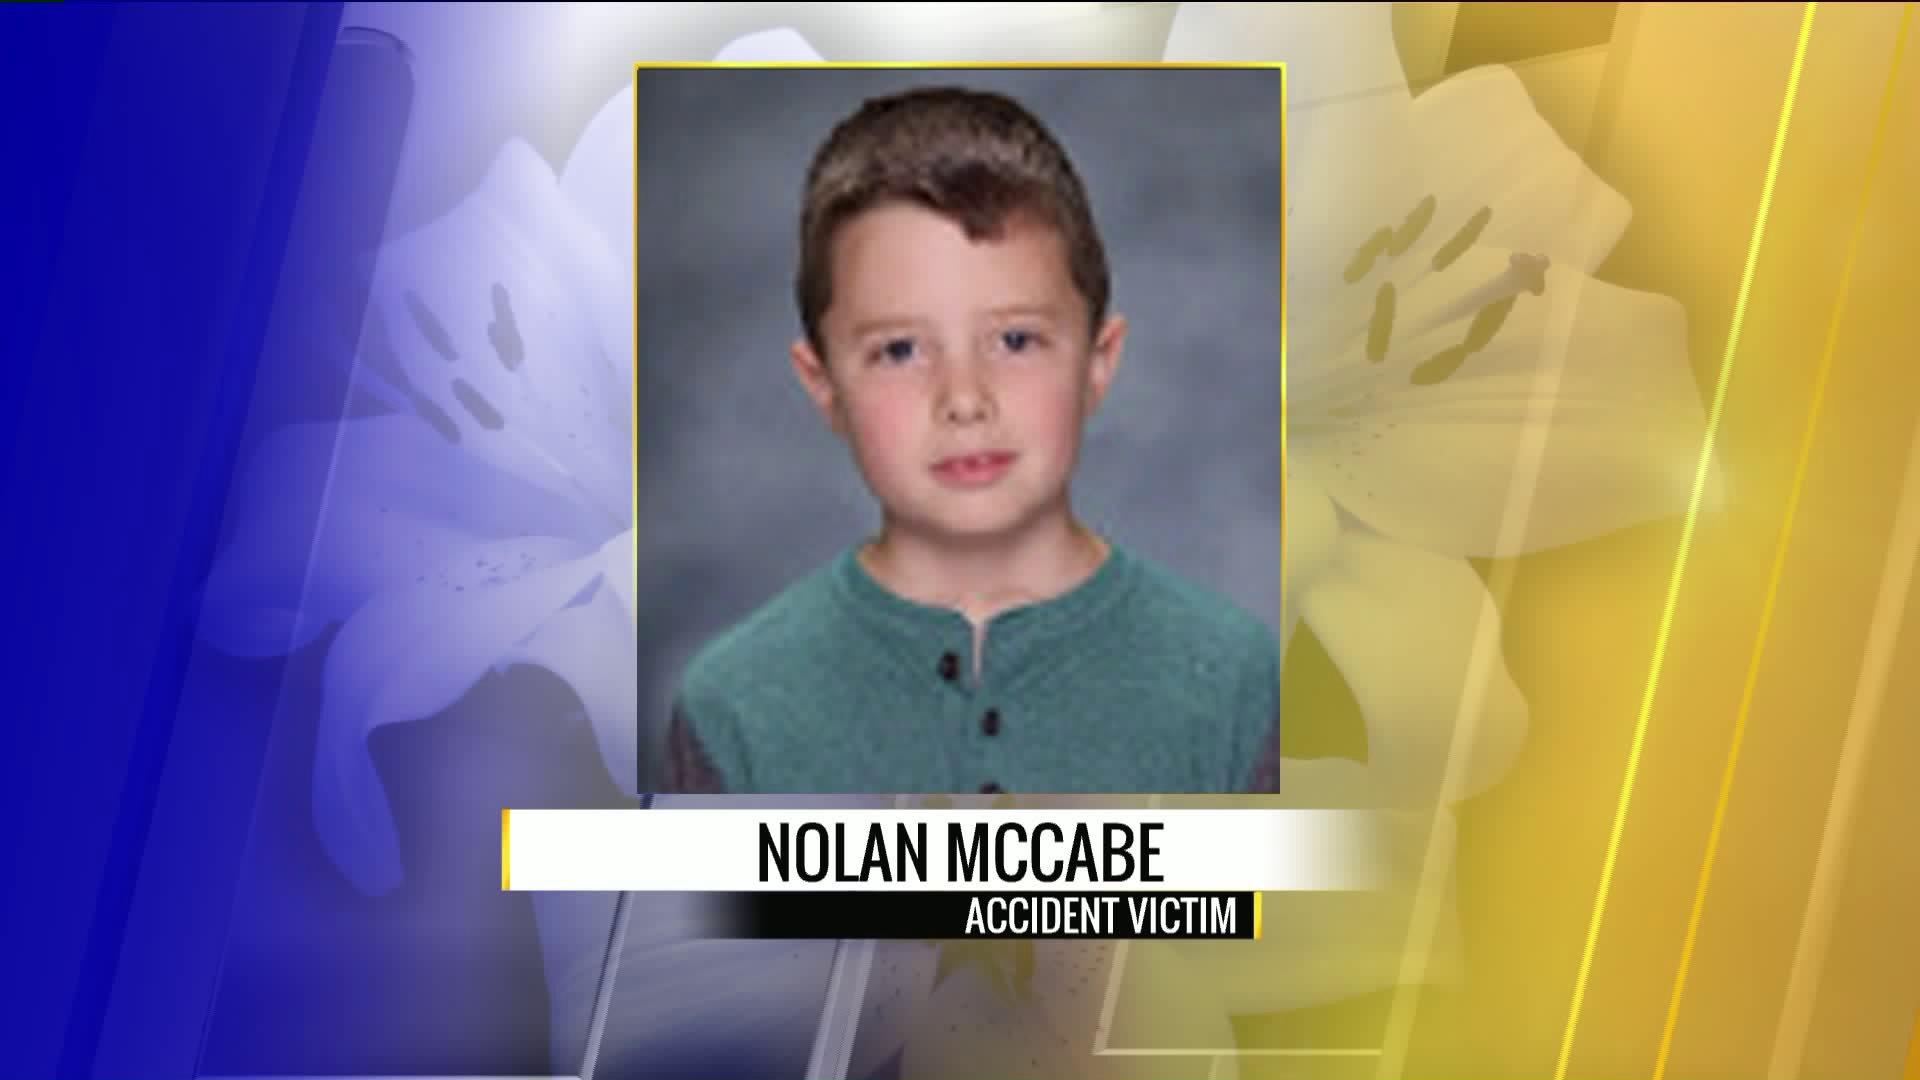 School District Loses Third Child to Tragedy in Just Three Months